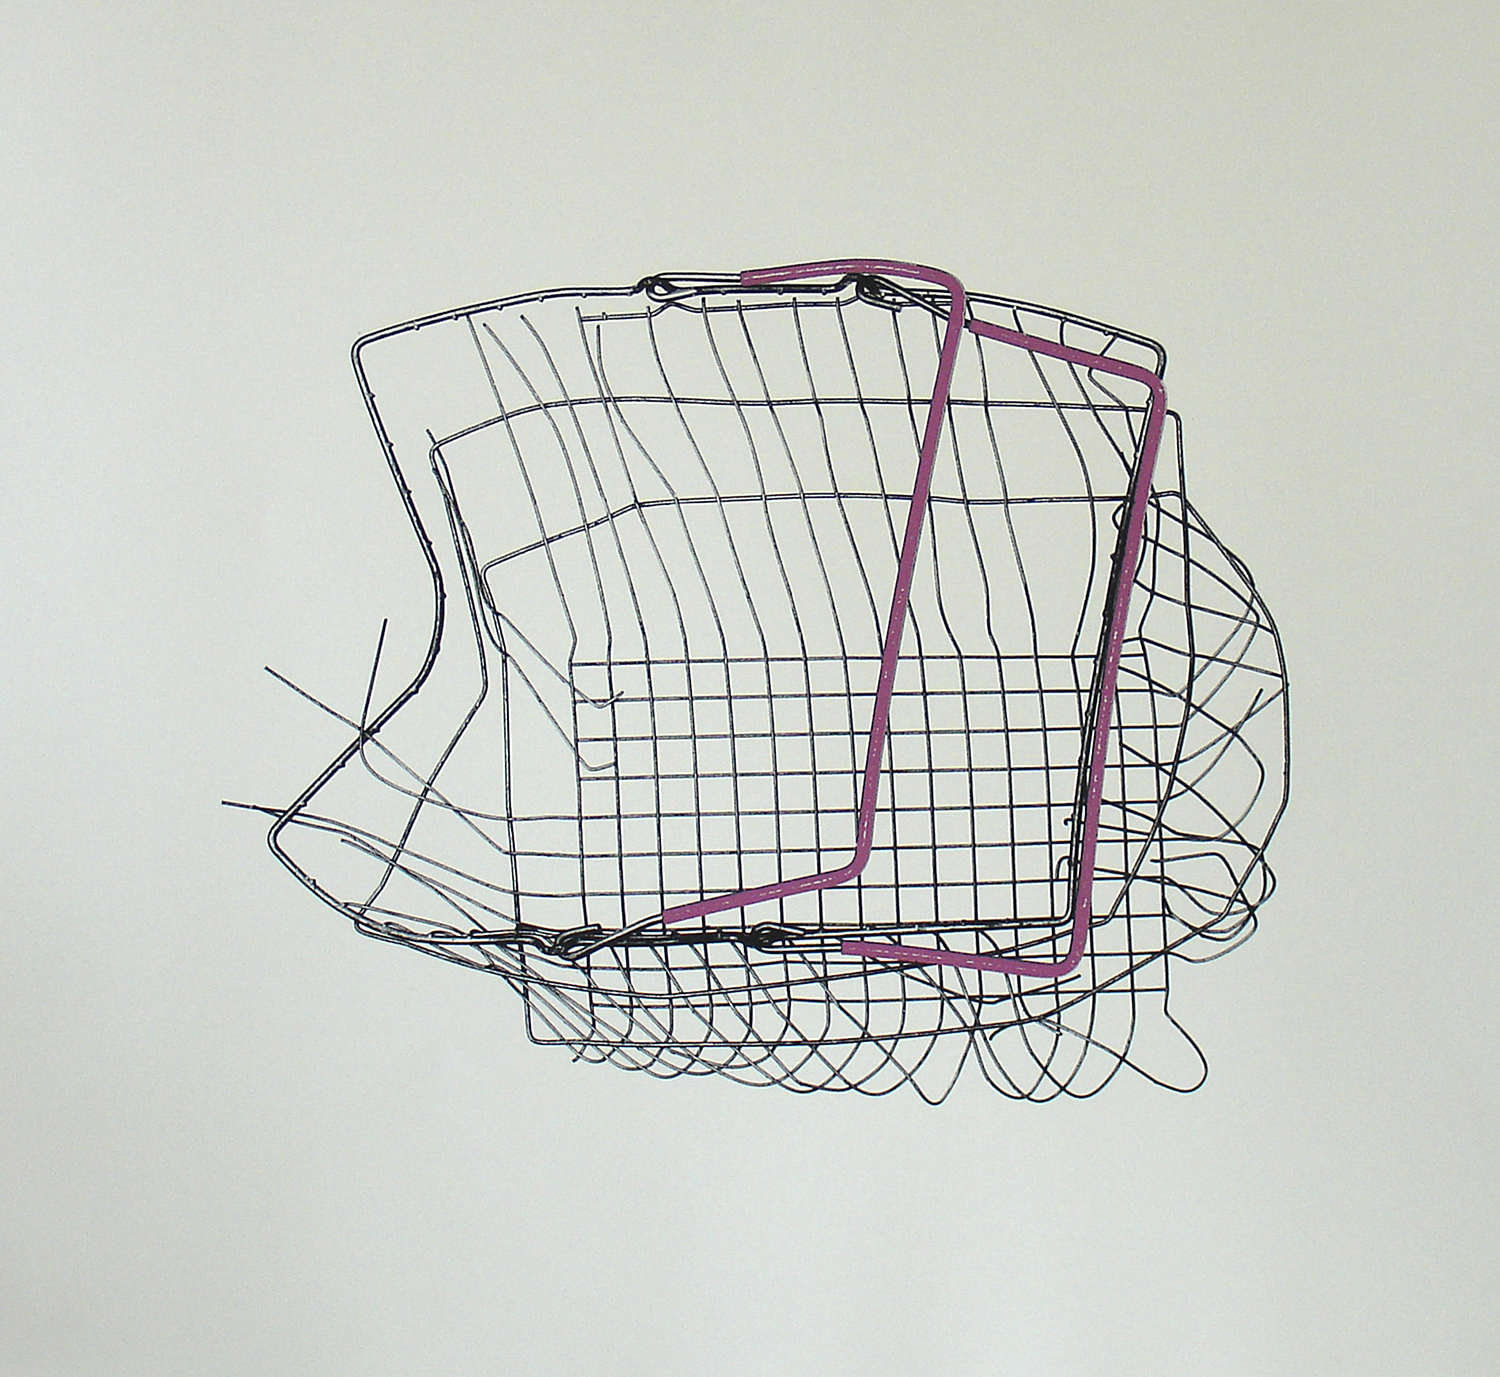 Loukas Morley, Basket Lilac    Date:  2011   Size (cm - unframed):  77 x 85 cm   Technique:  Screenprint   Materials:  Heritage 300gsm   Edition size:  25   Publisher:  The Artist & The Print Studio   Copyright:  The Artist     P.O.A.